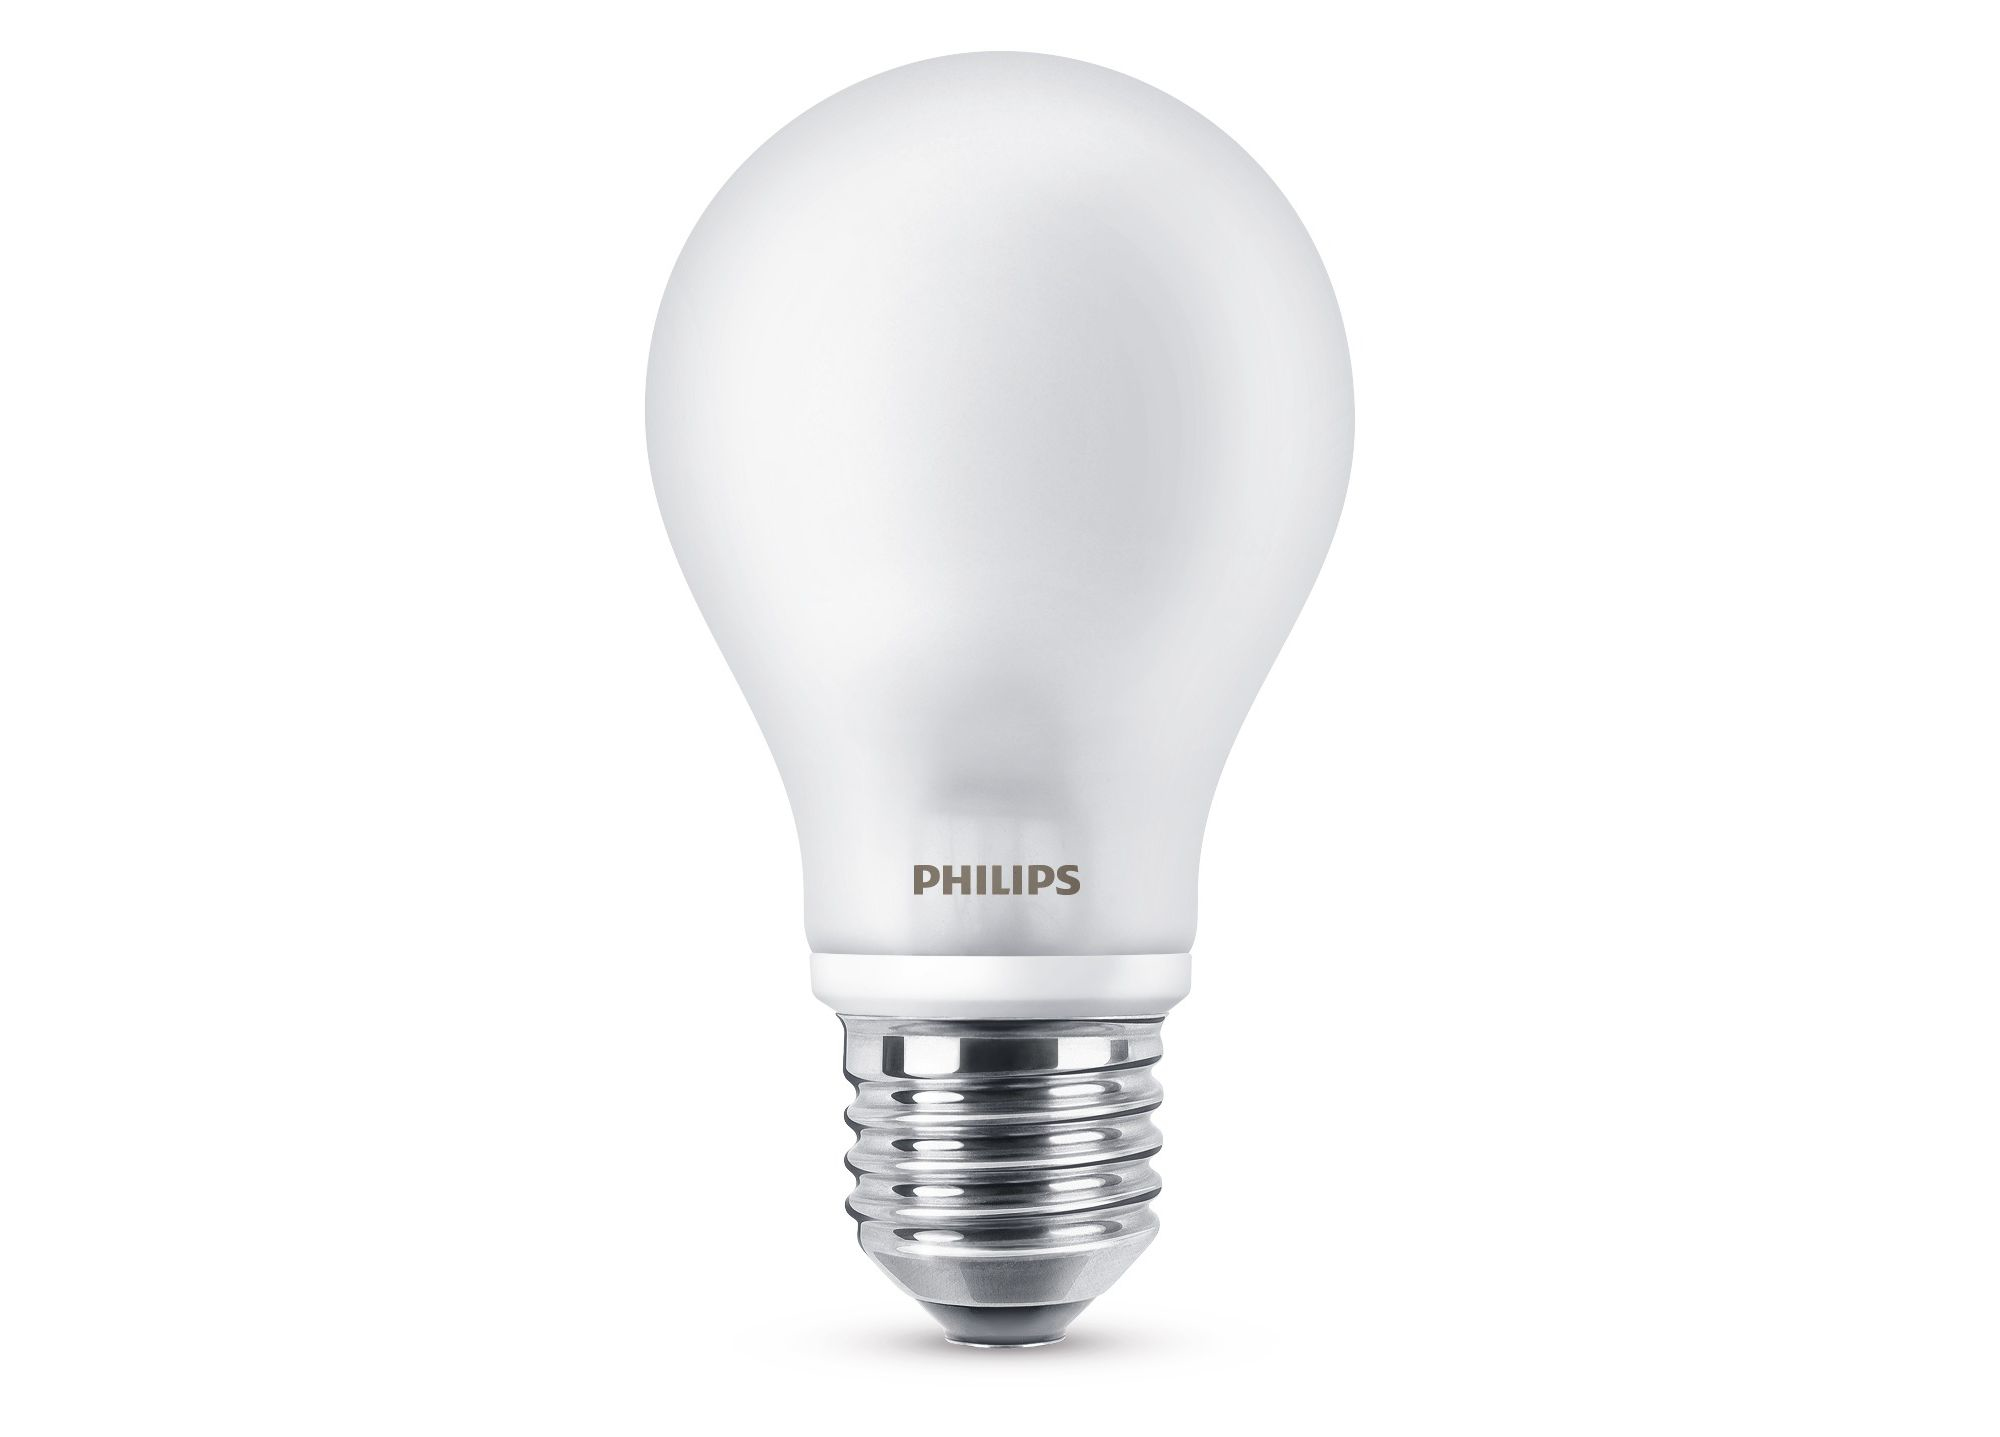 Philips Lampadina a LED - Lampadina a LED - Incaled40